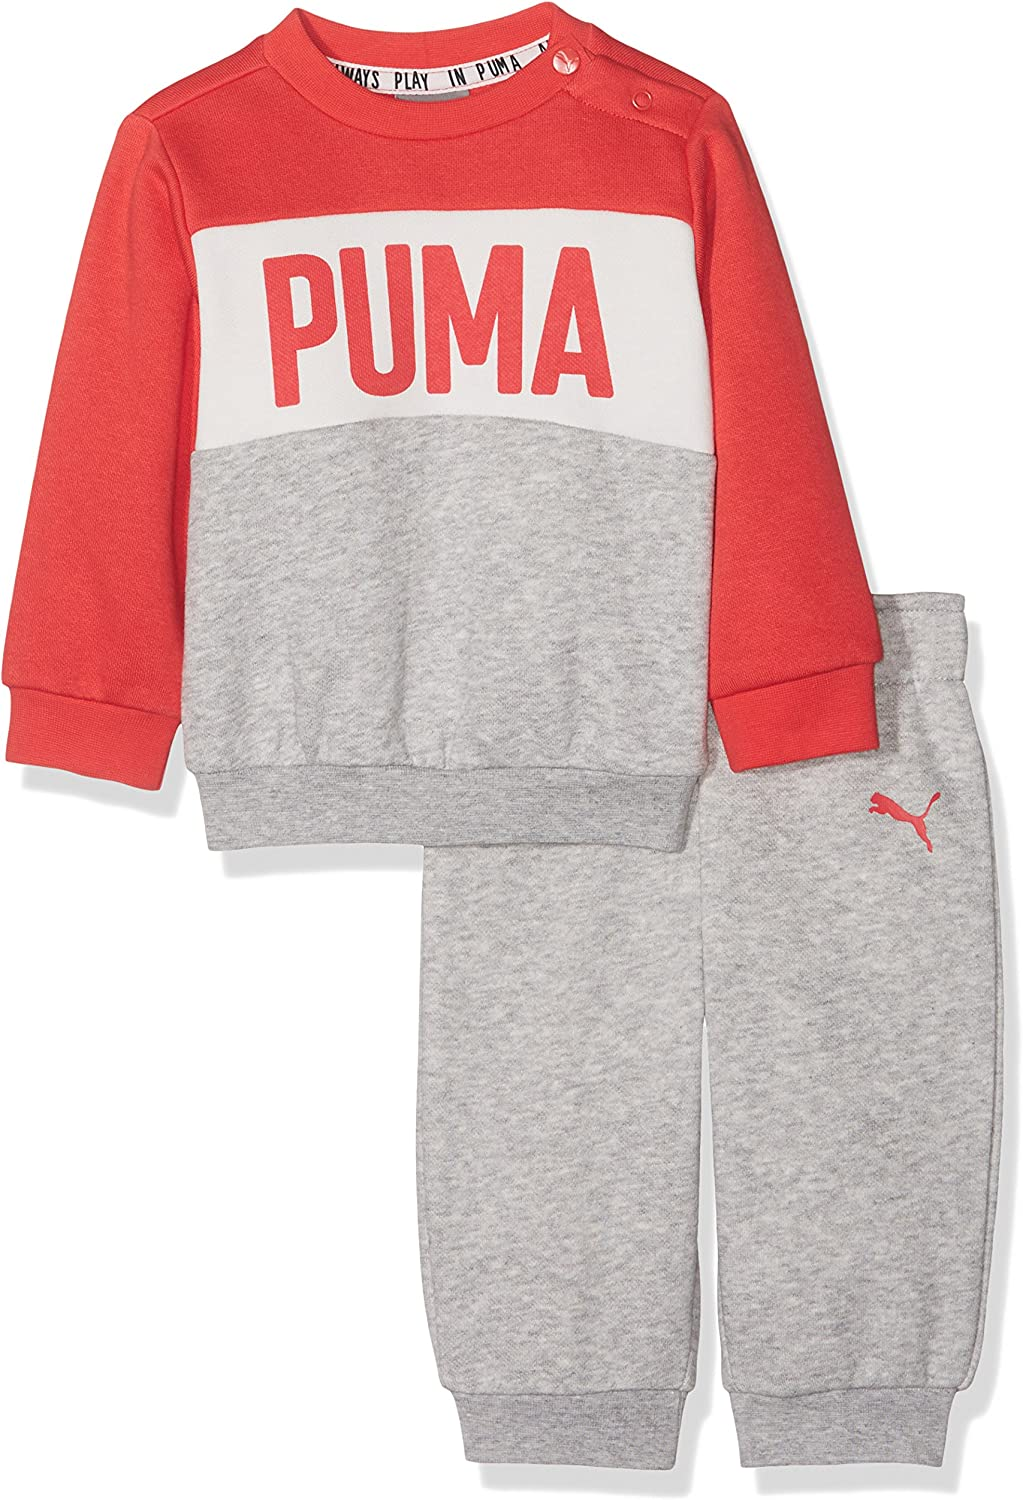 Puma - Minicats crew - chándal - light gray heather: Amazon.es ...